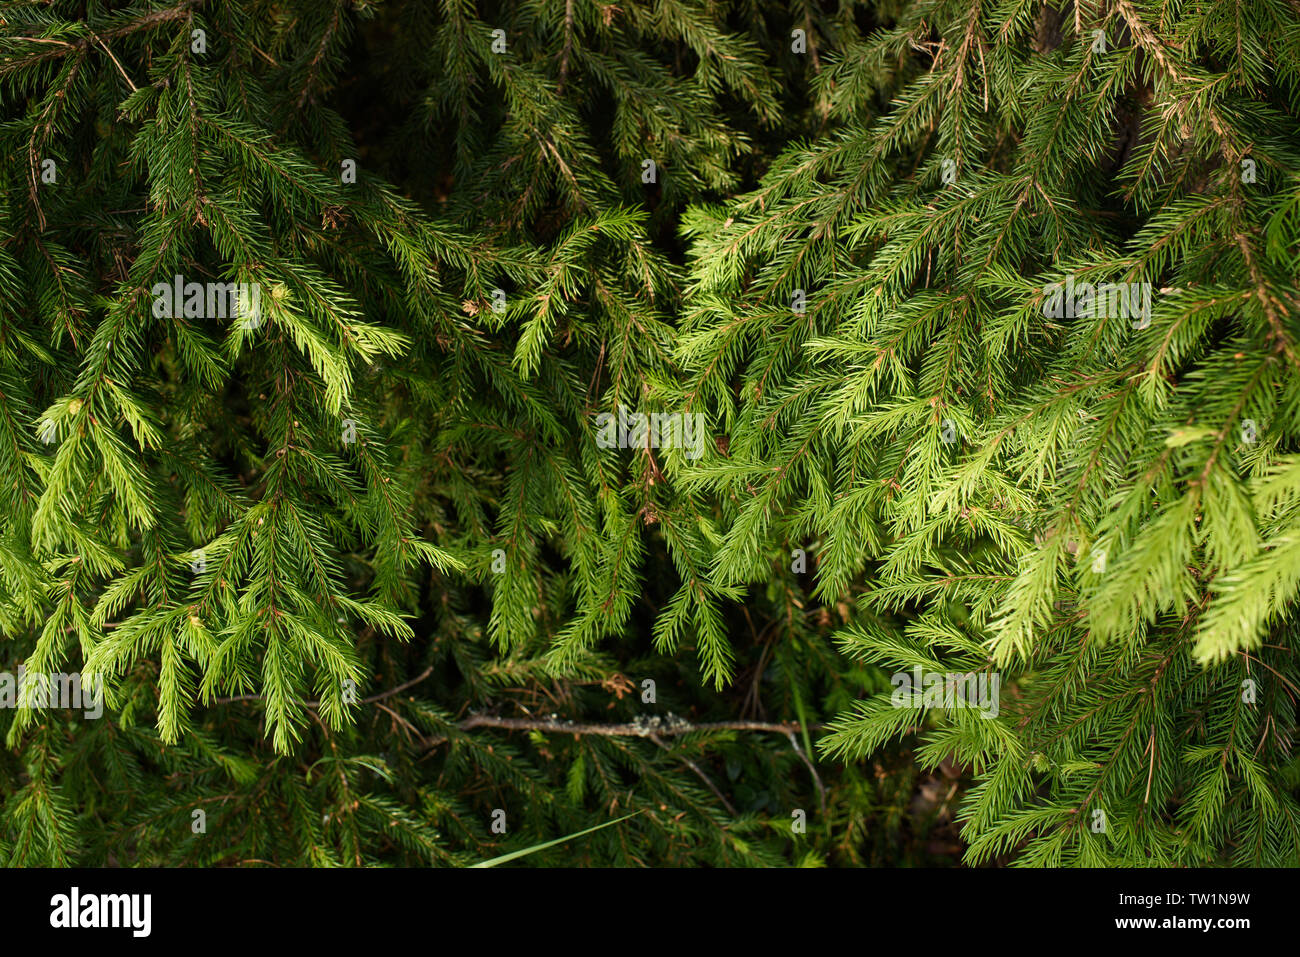 Branches of fir trees with new grown branches. Stock Photo